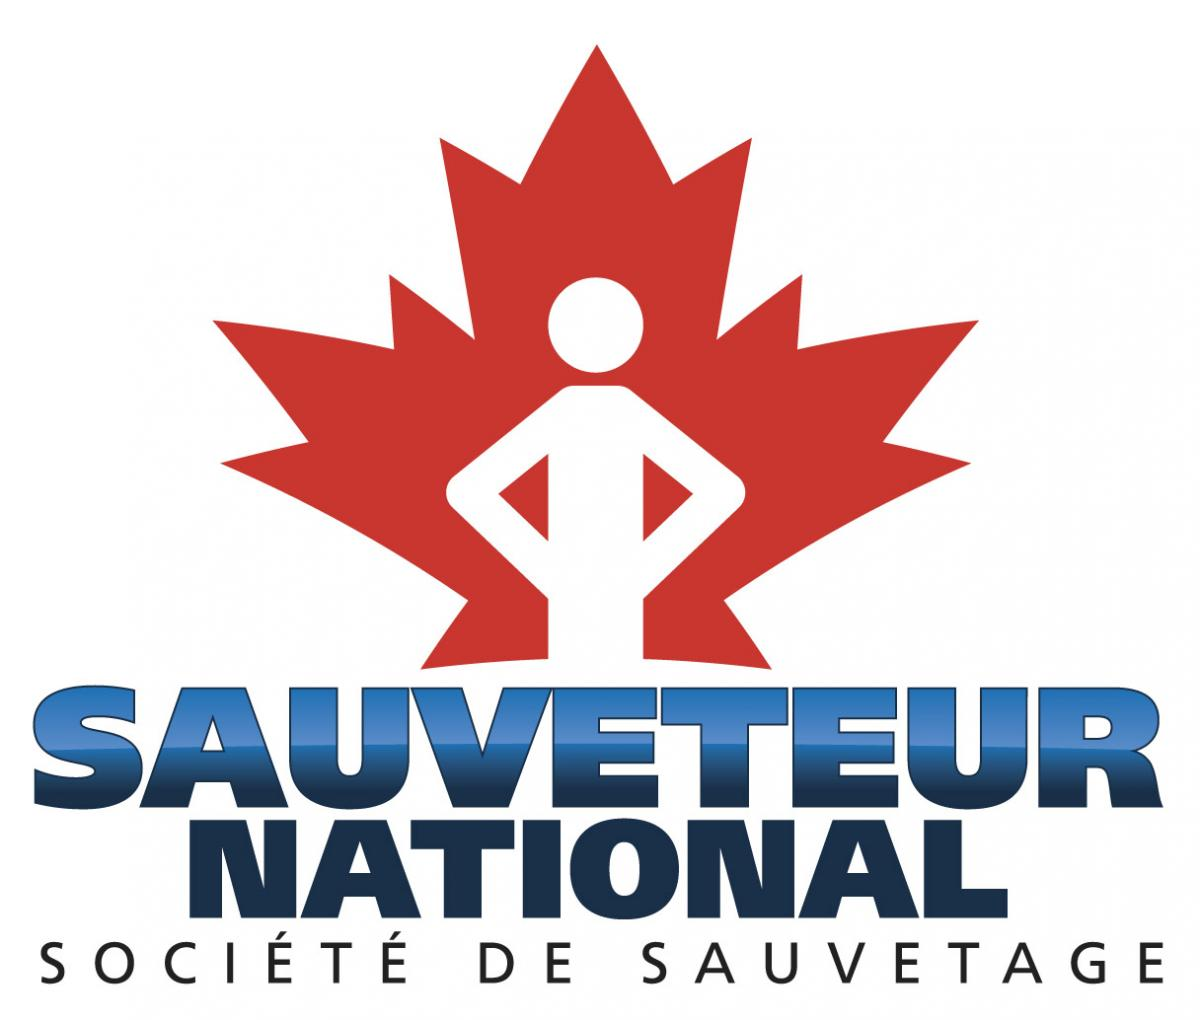 Sauveteur national, SN